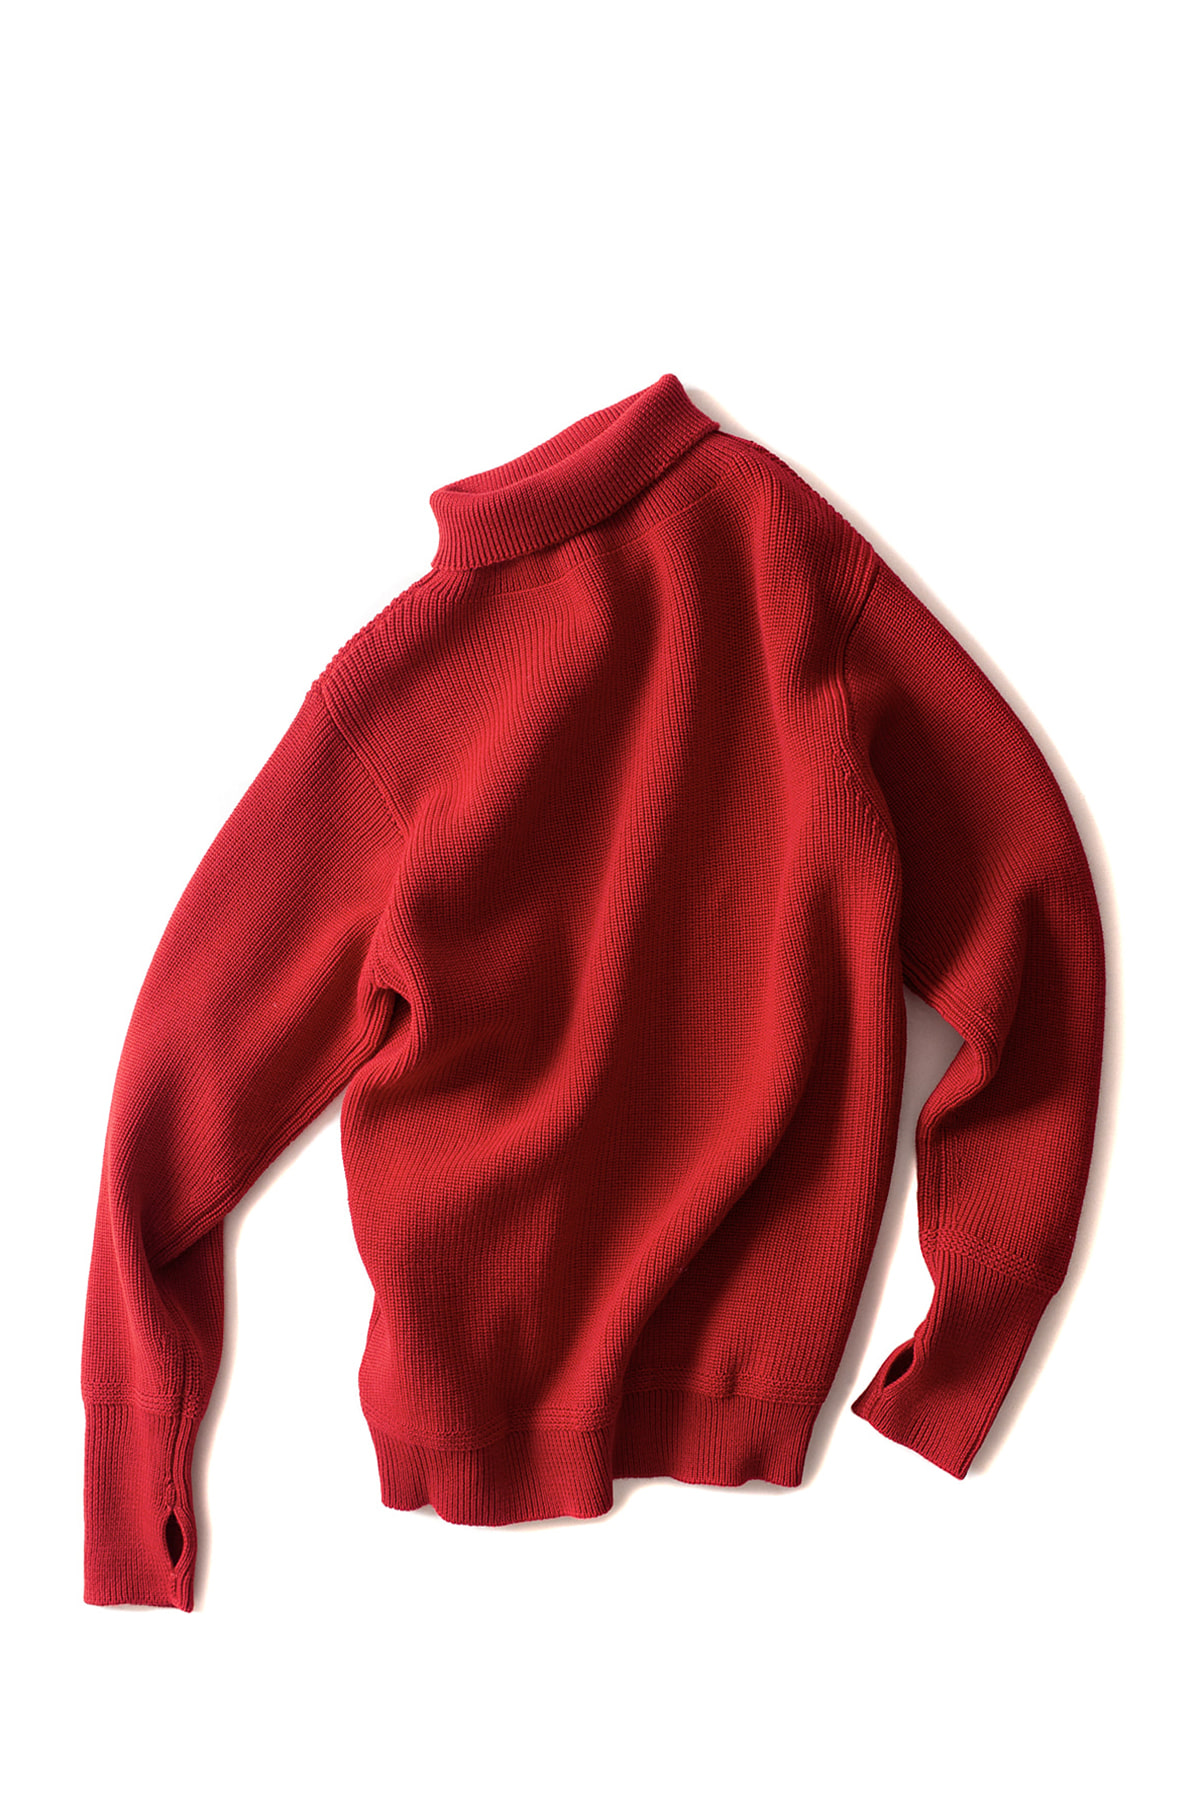 Andersen-Andersen : Sailor Turtleneck (Red)